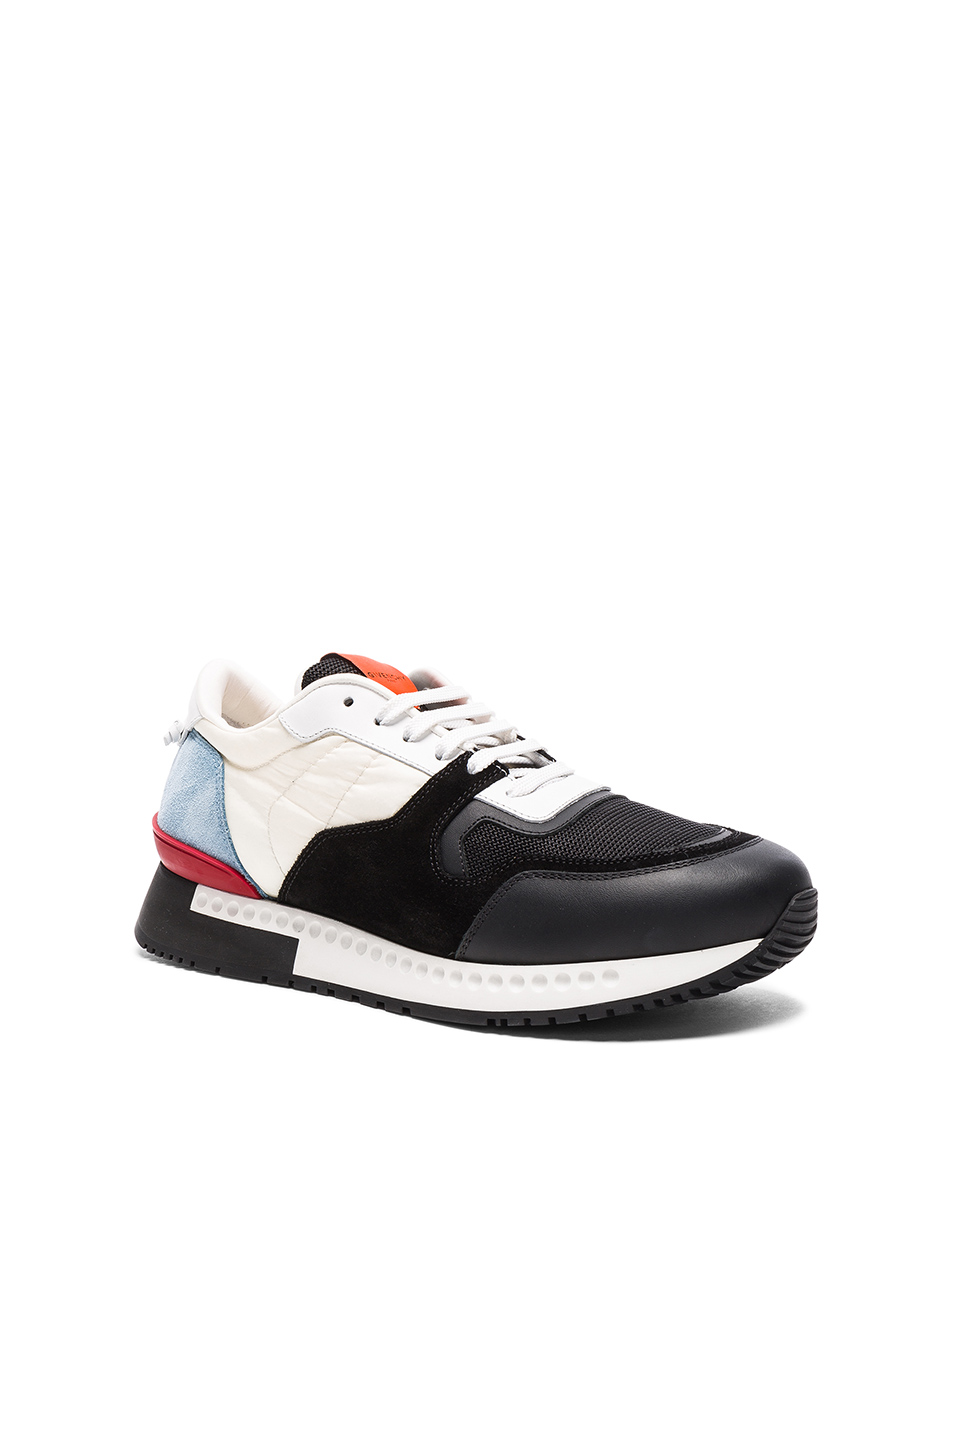 Givenchy Runner Active Nylon Sneakers in Black,White,Blue